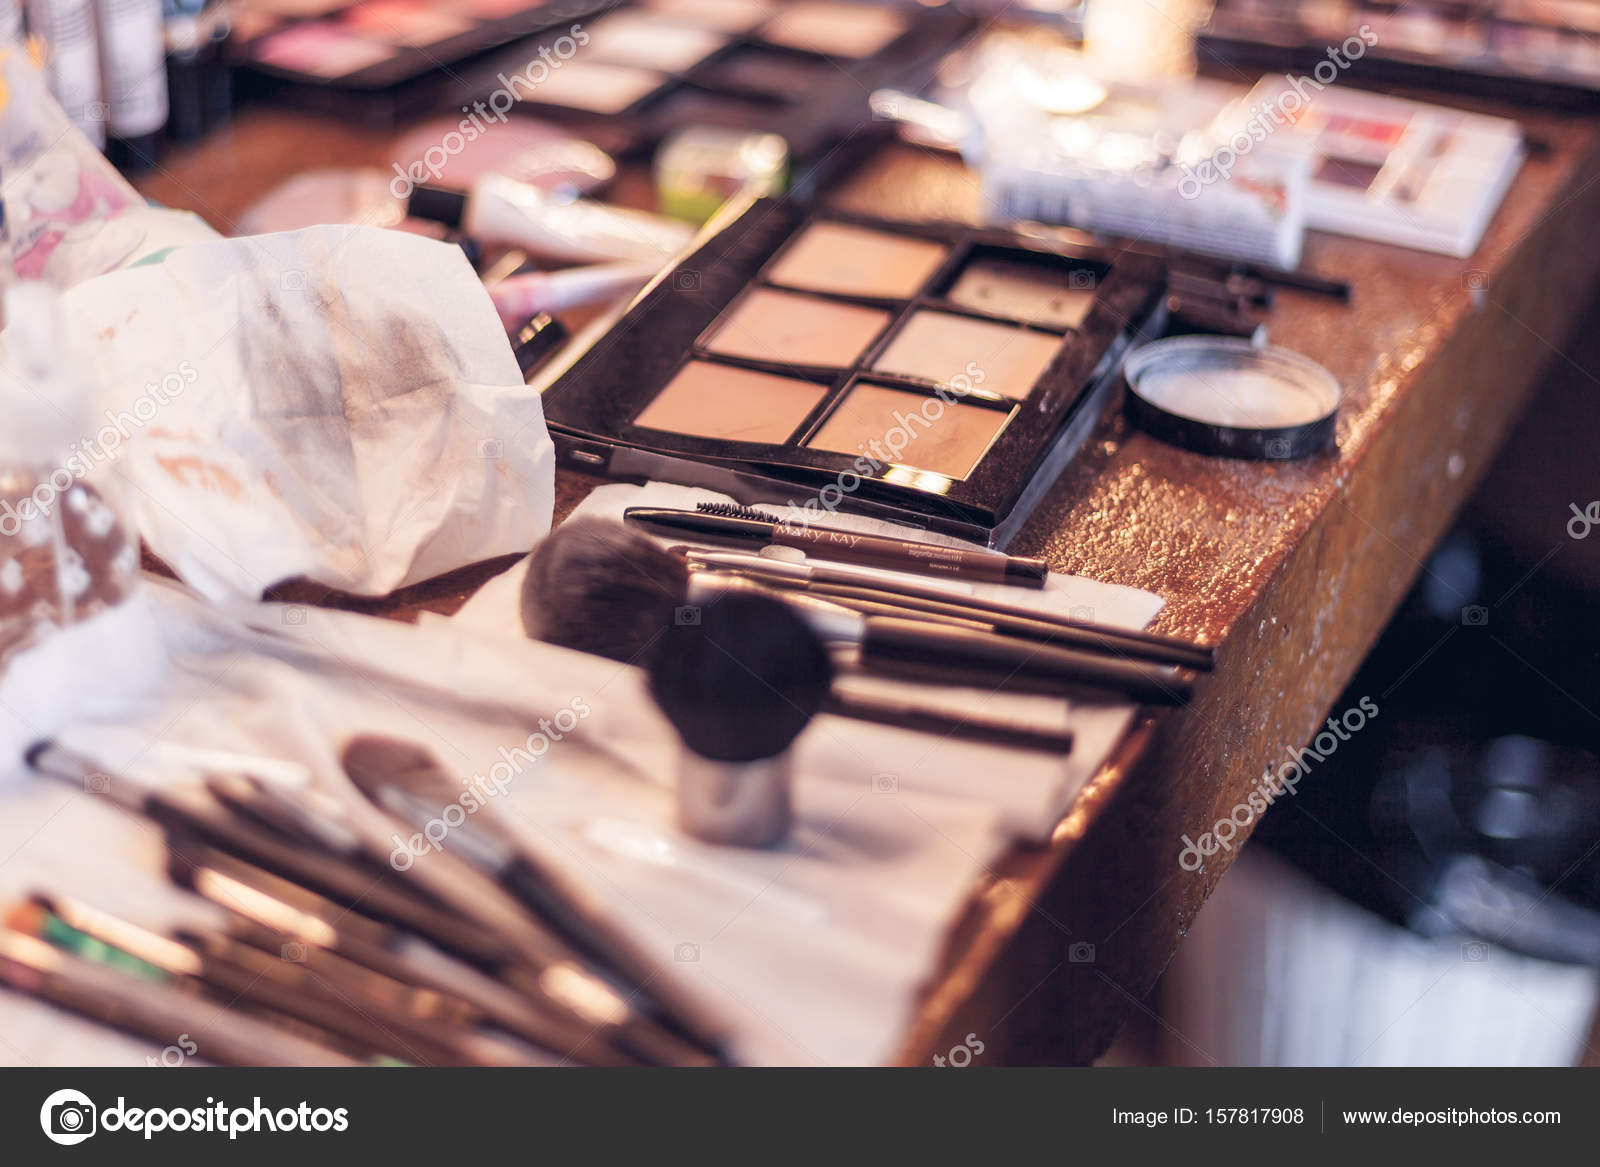 Assorted makeup products macro \u2013 Stock Editorial Photo